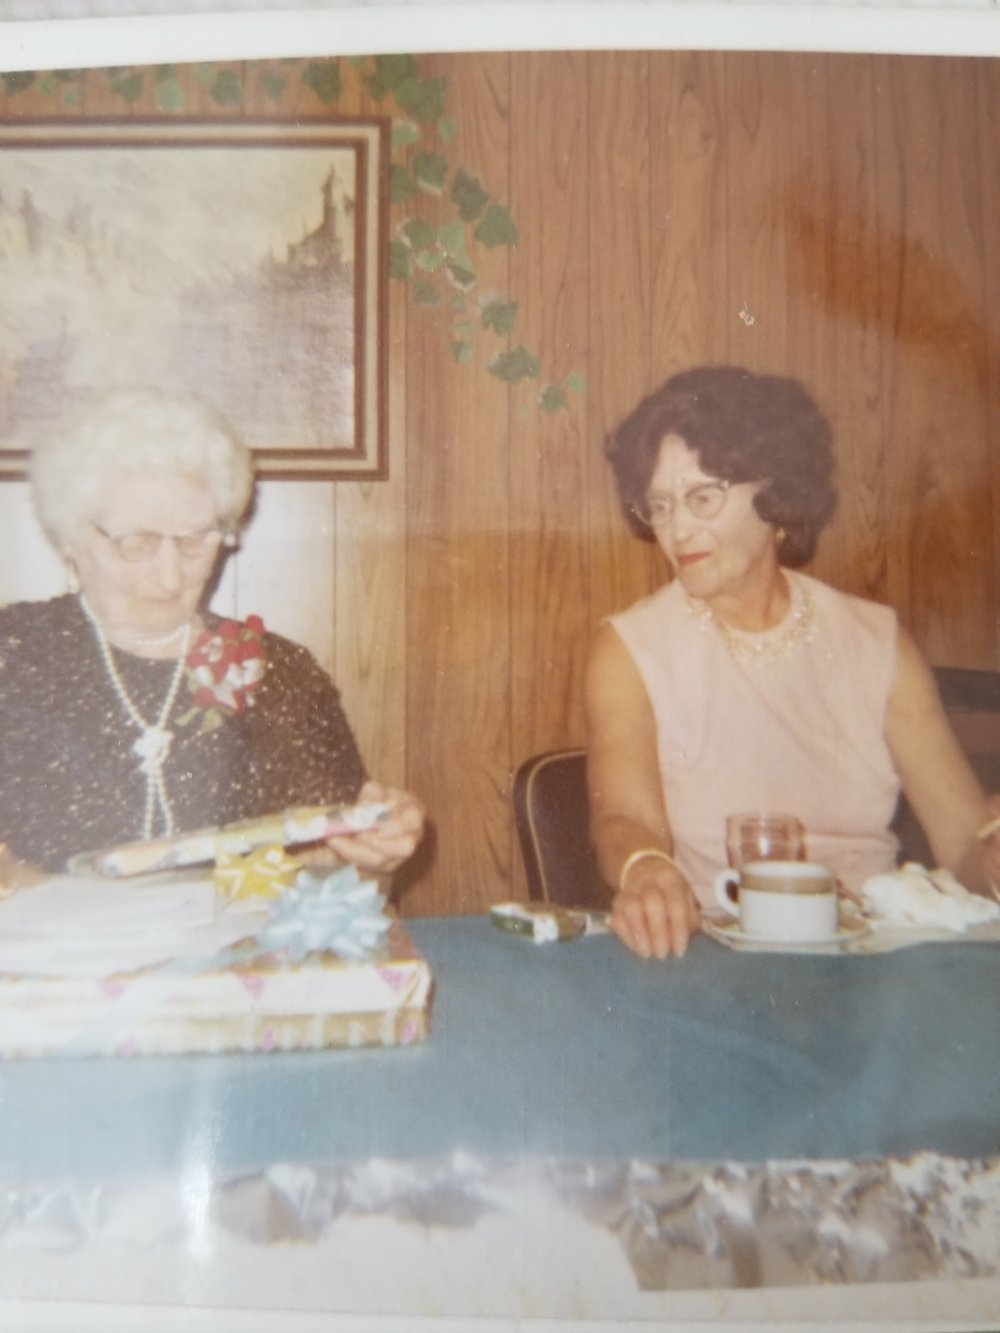 On the left is my great, great grandmother Augusta with her daughter, my great grandmother Ella.